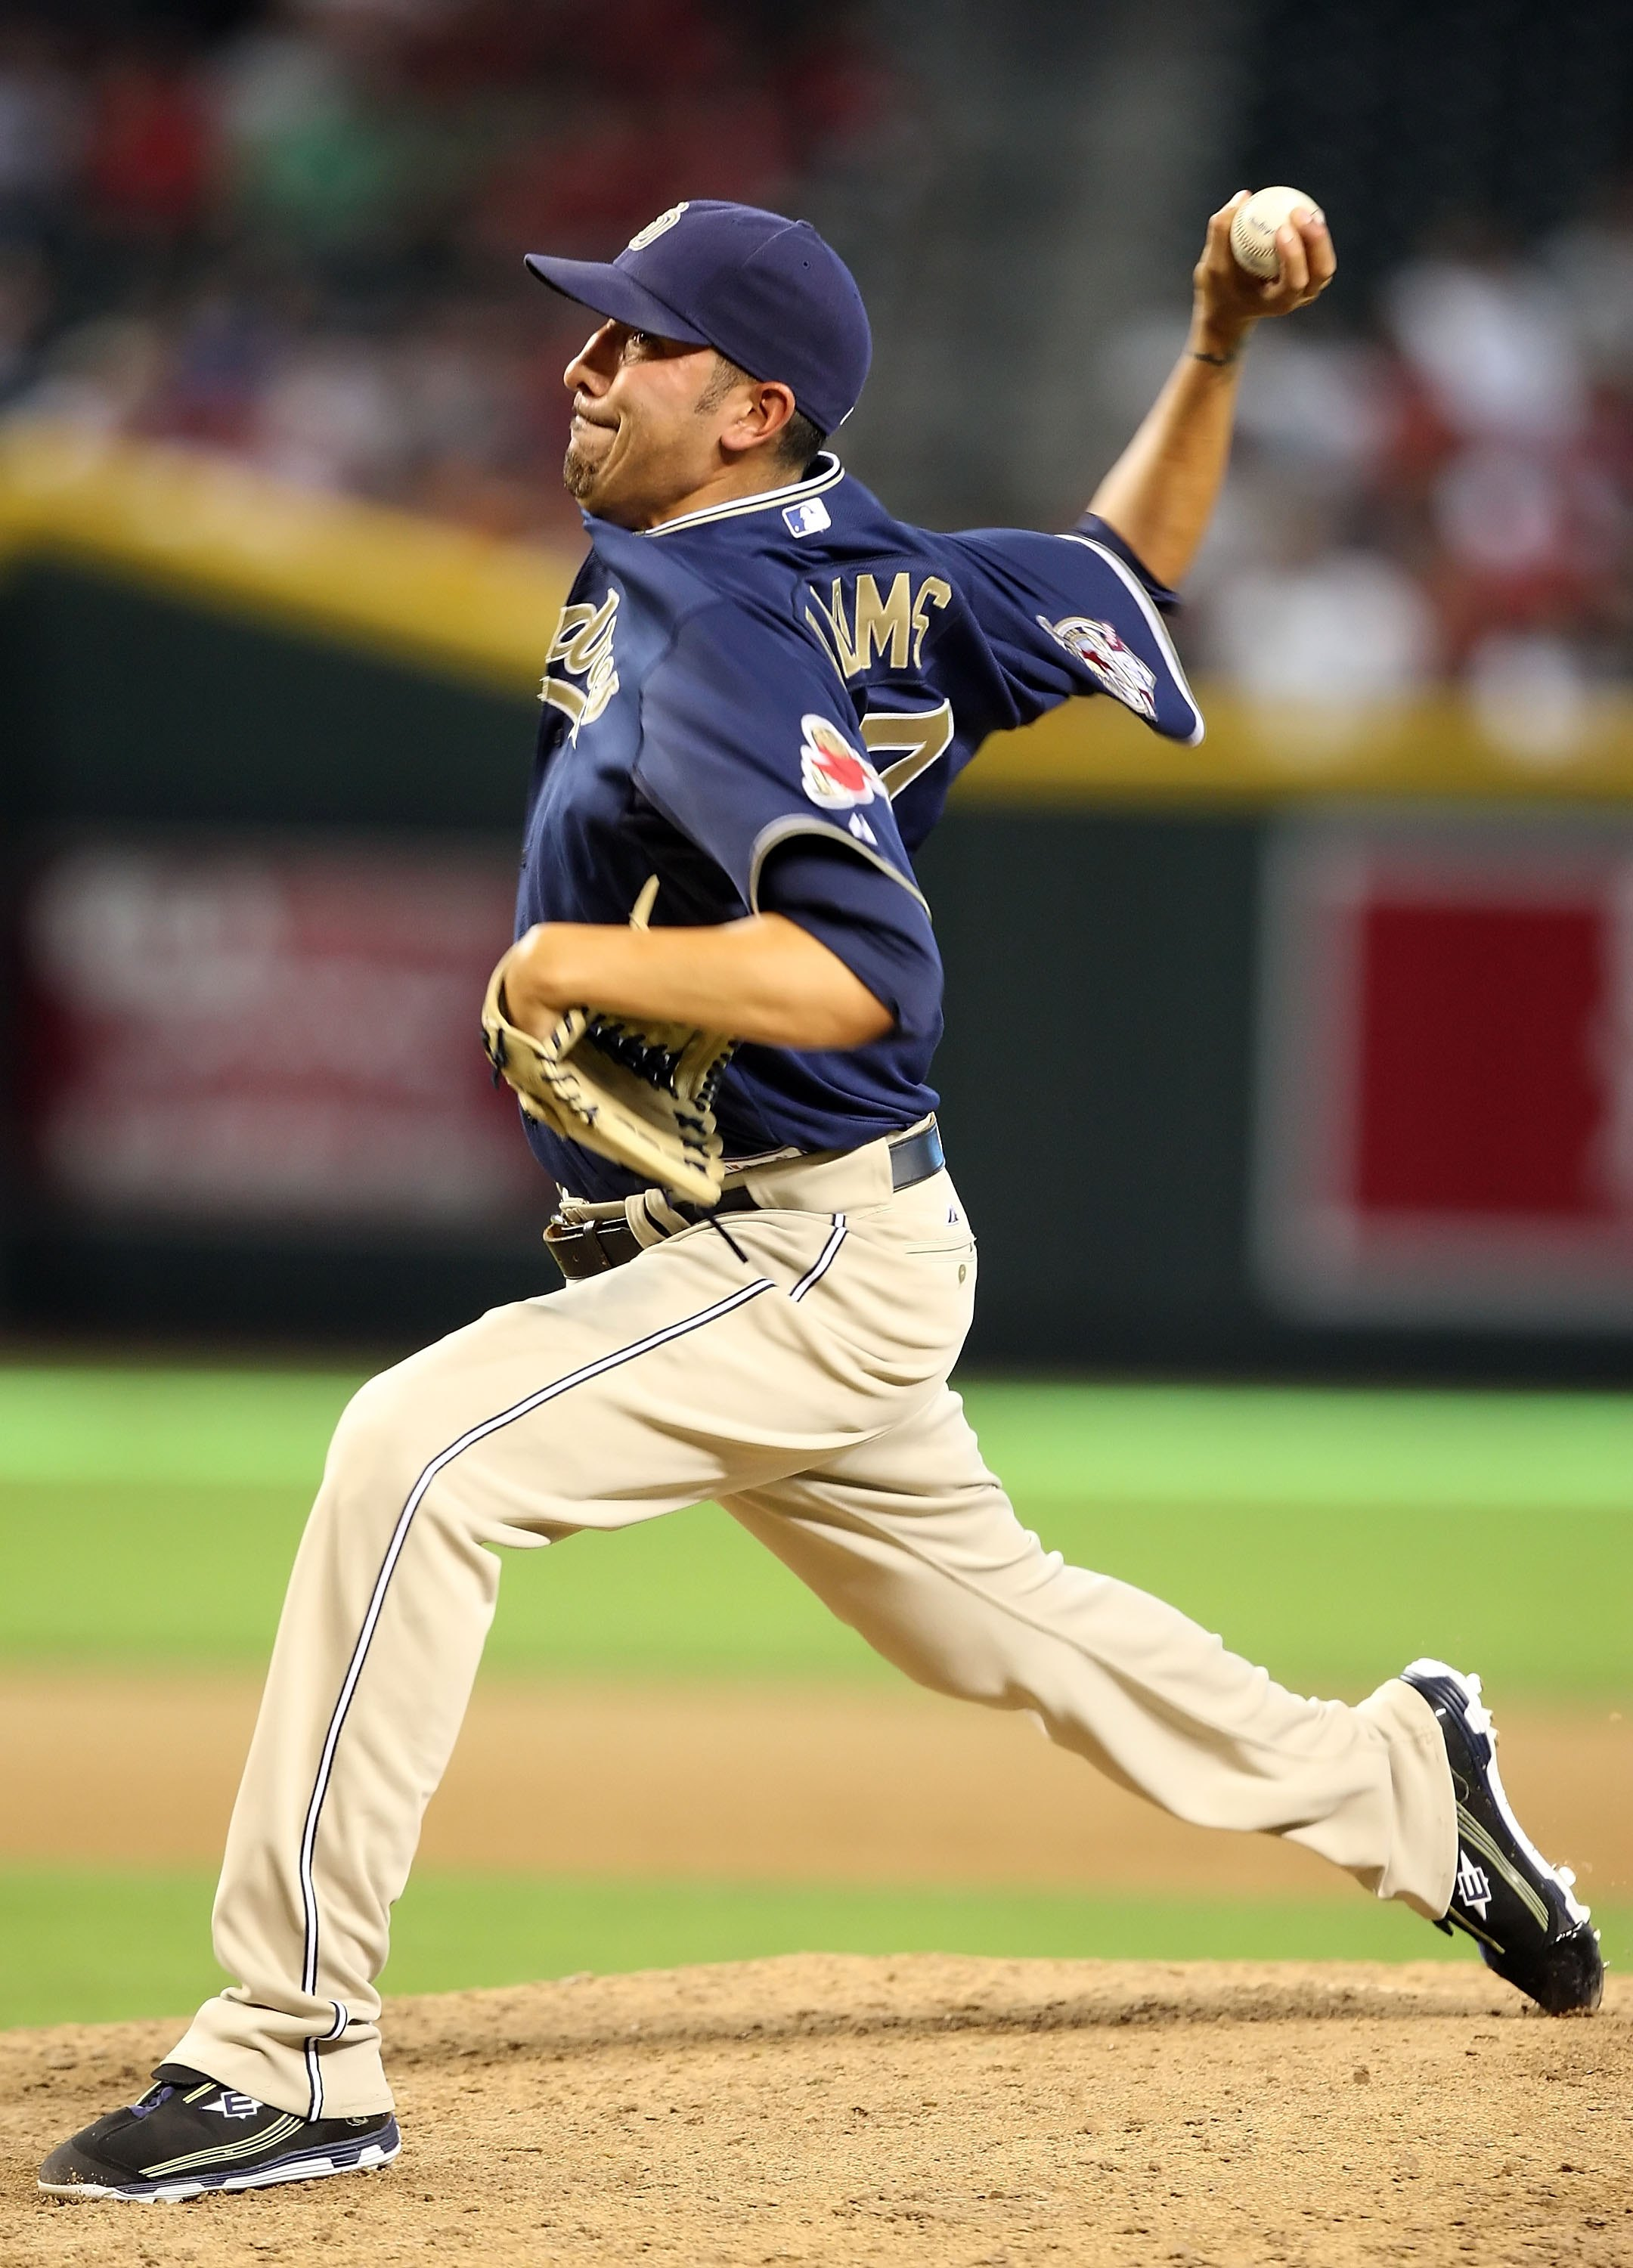 PHOENIX - JULY 08:  Relief pitcher Mike Adams #37 of the San Diego Padres pitches against the Arizona Diamondbacks during the major league baseball game at Chase Field on July 8, 2009 in Phoenix, Arizona. The Diamondbacks defeated the Padres 6-2.  (Photo